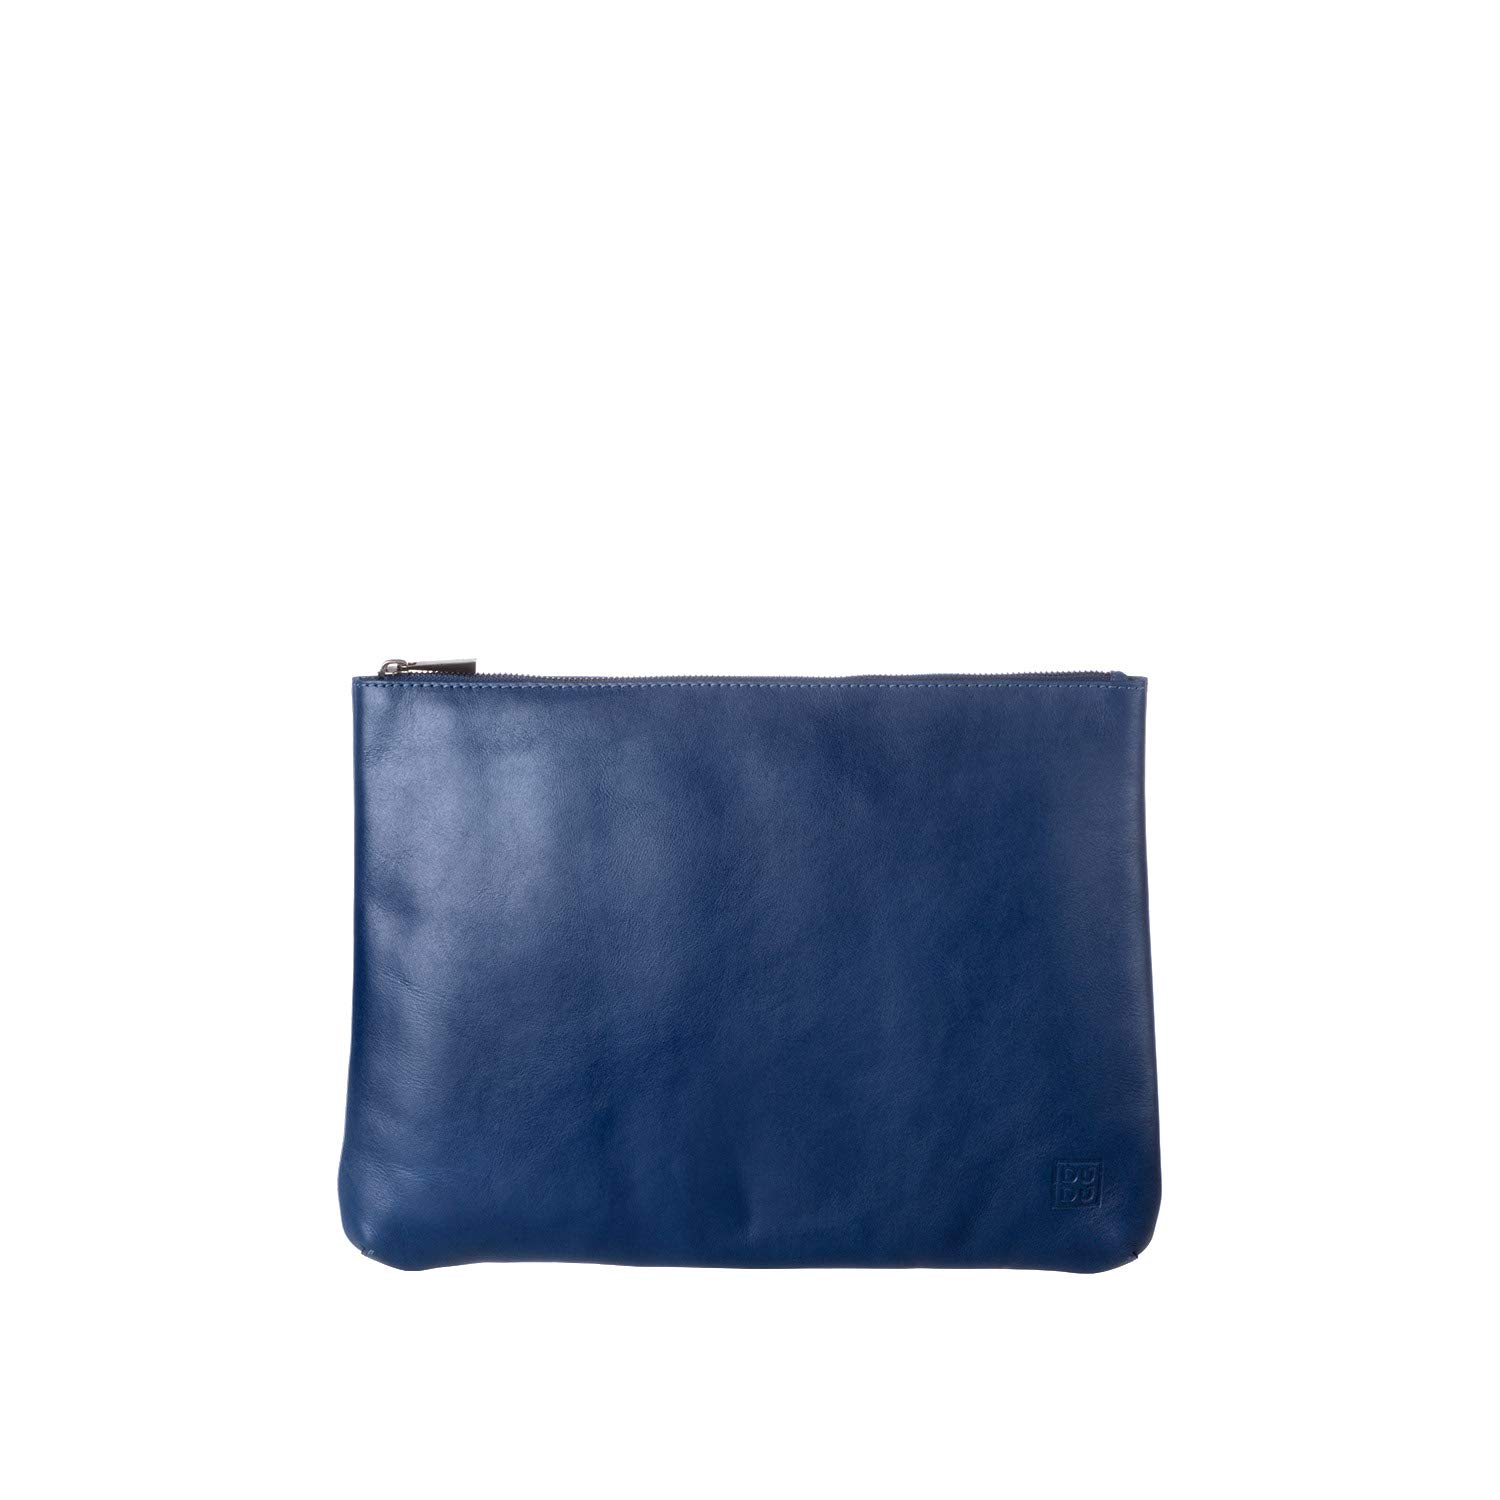 DUDU Clutch Bag Purse with Handle for ladies and men in Real Leather Slim & Large Handbag with Zipper closure - Isa - Blue by DuDu (Image #1)